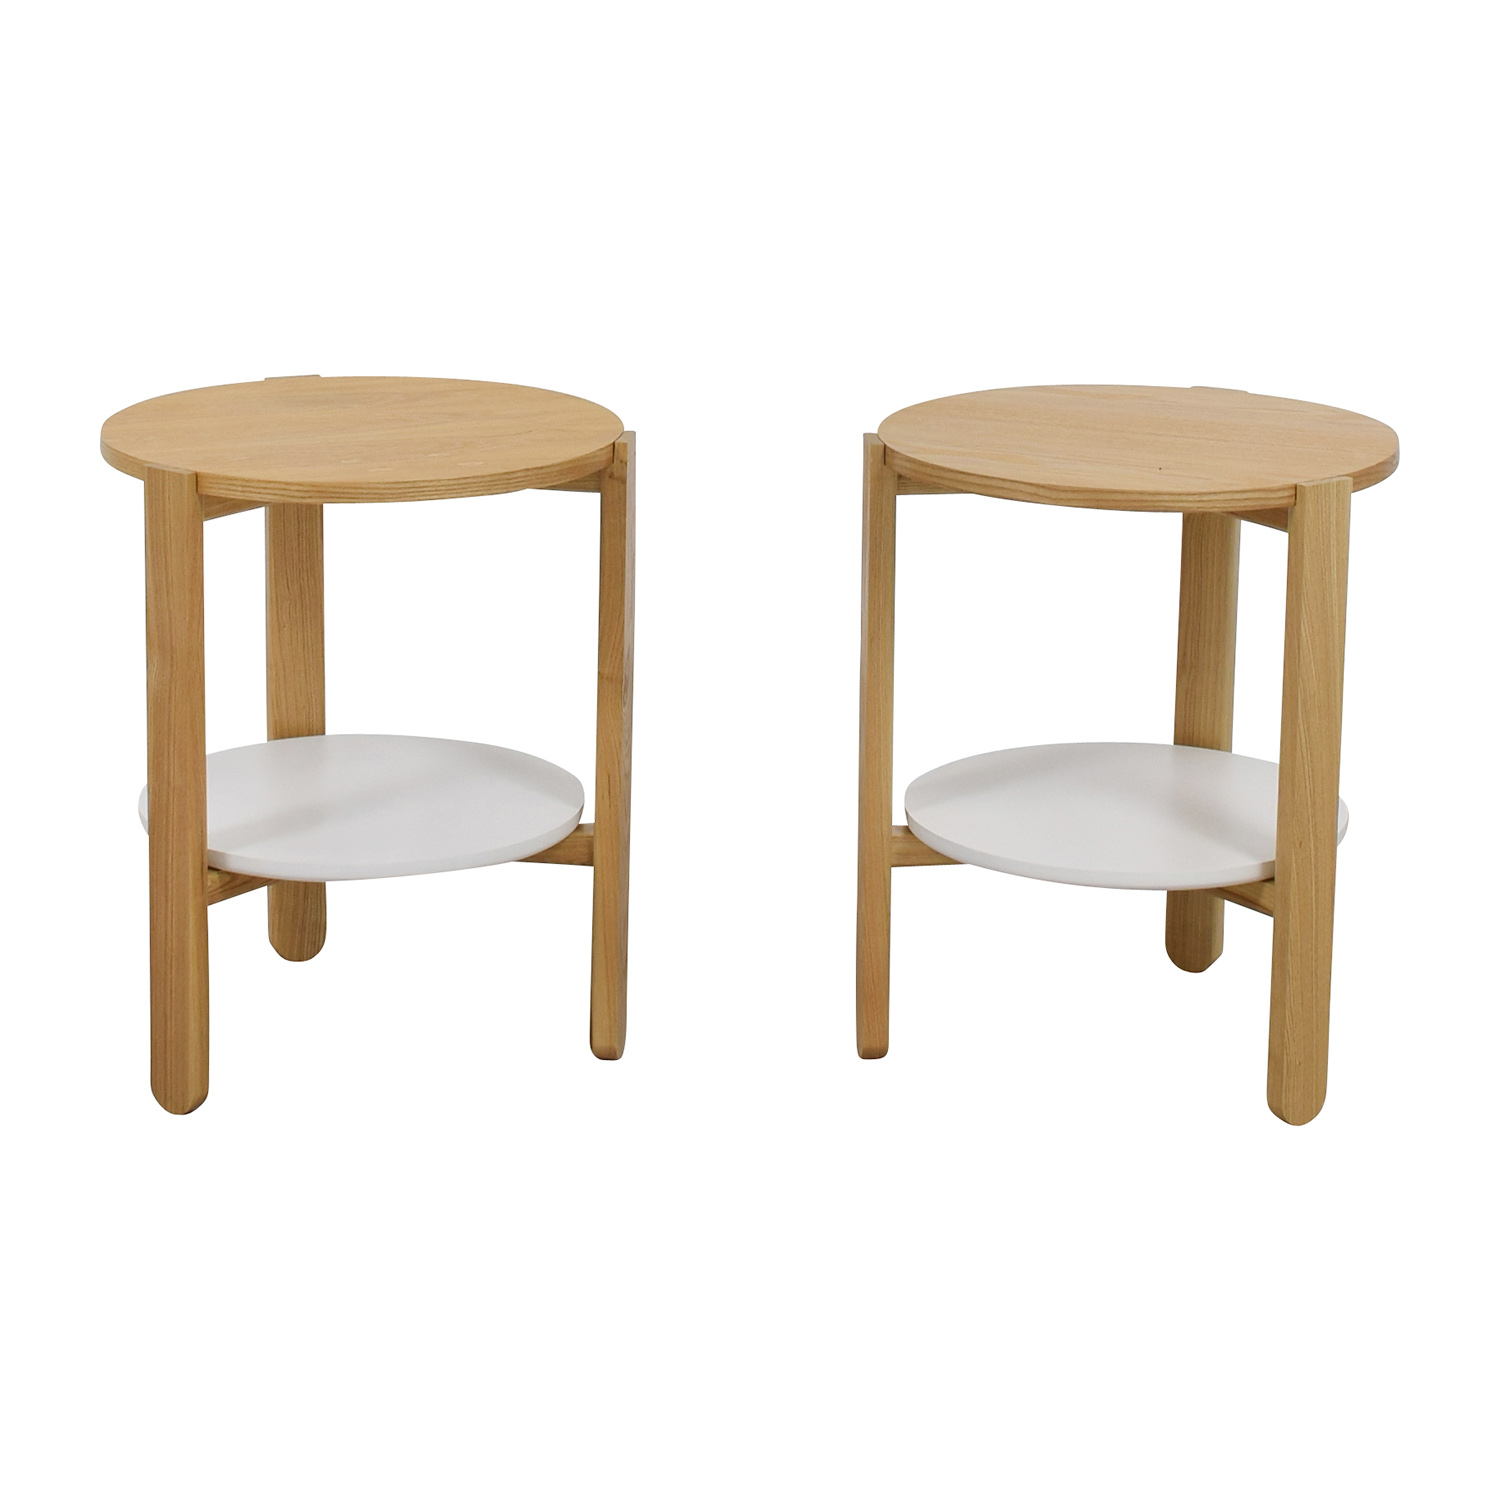 Umbra Umbra Two-toned Round Wood Side Tables price